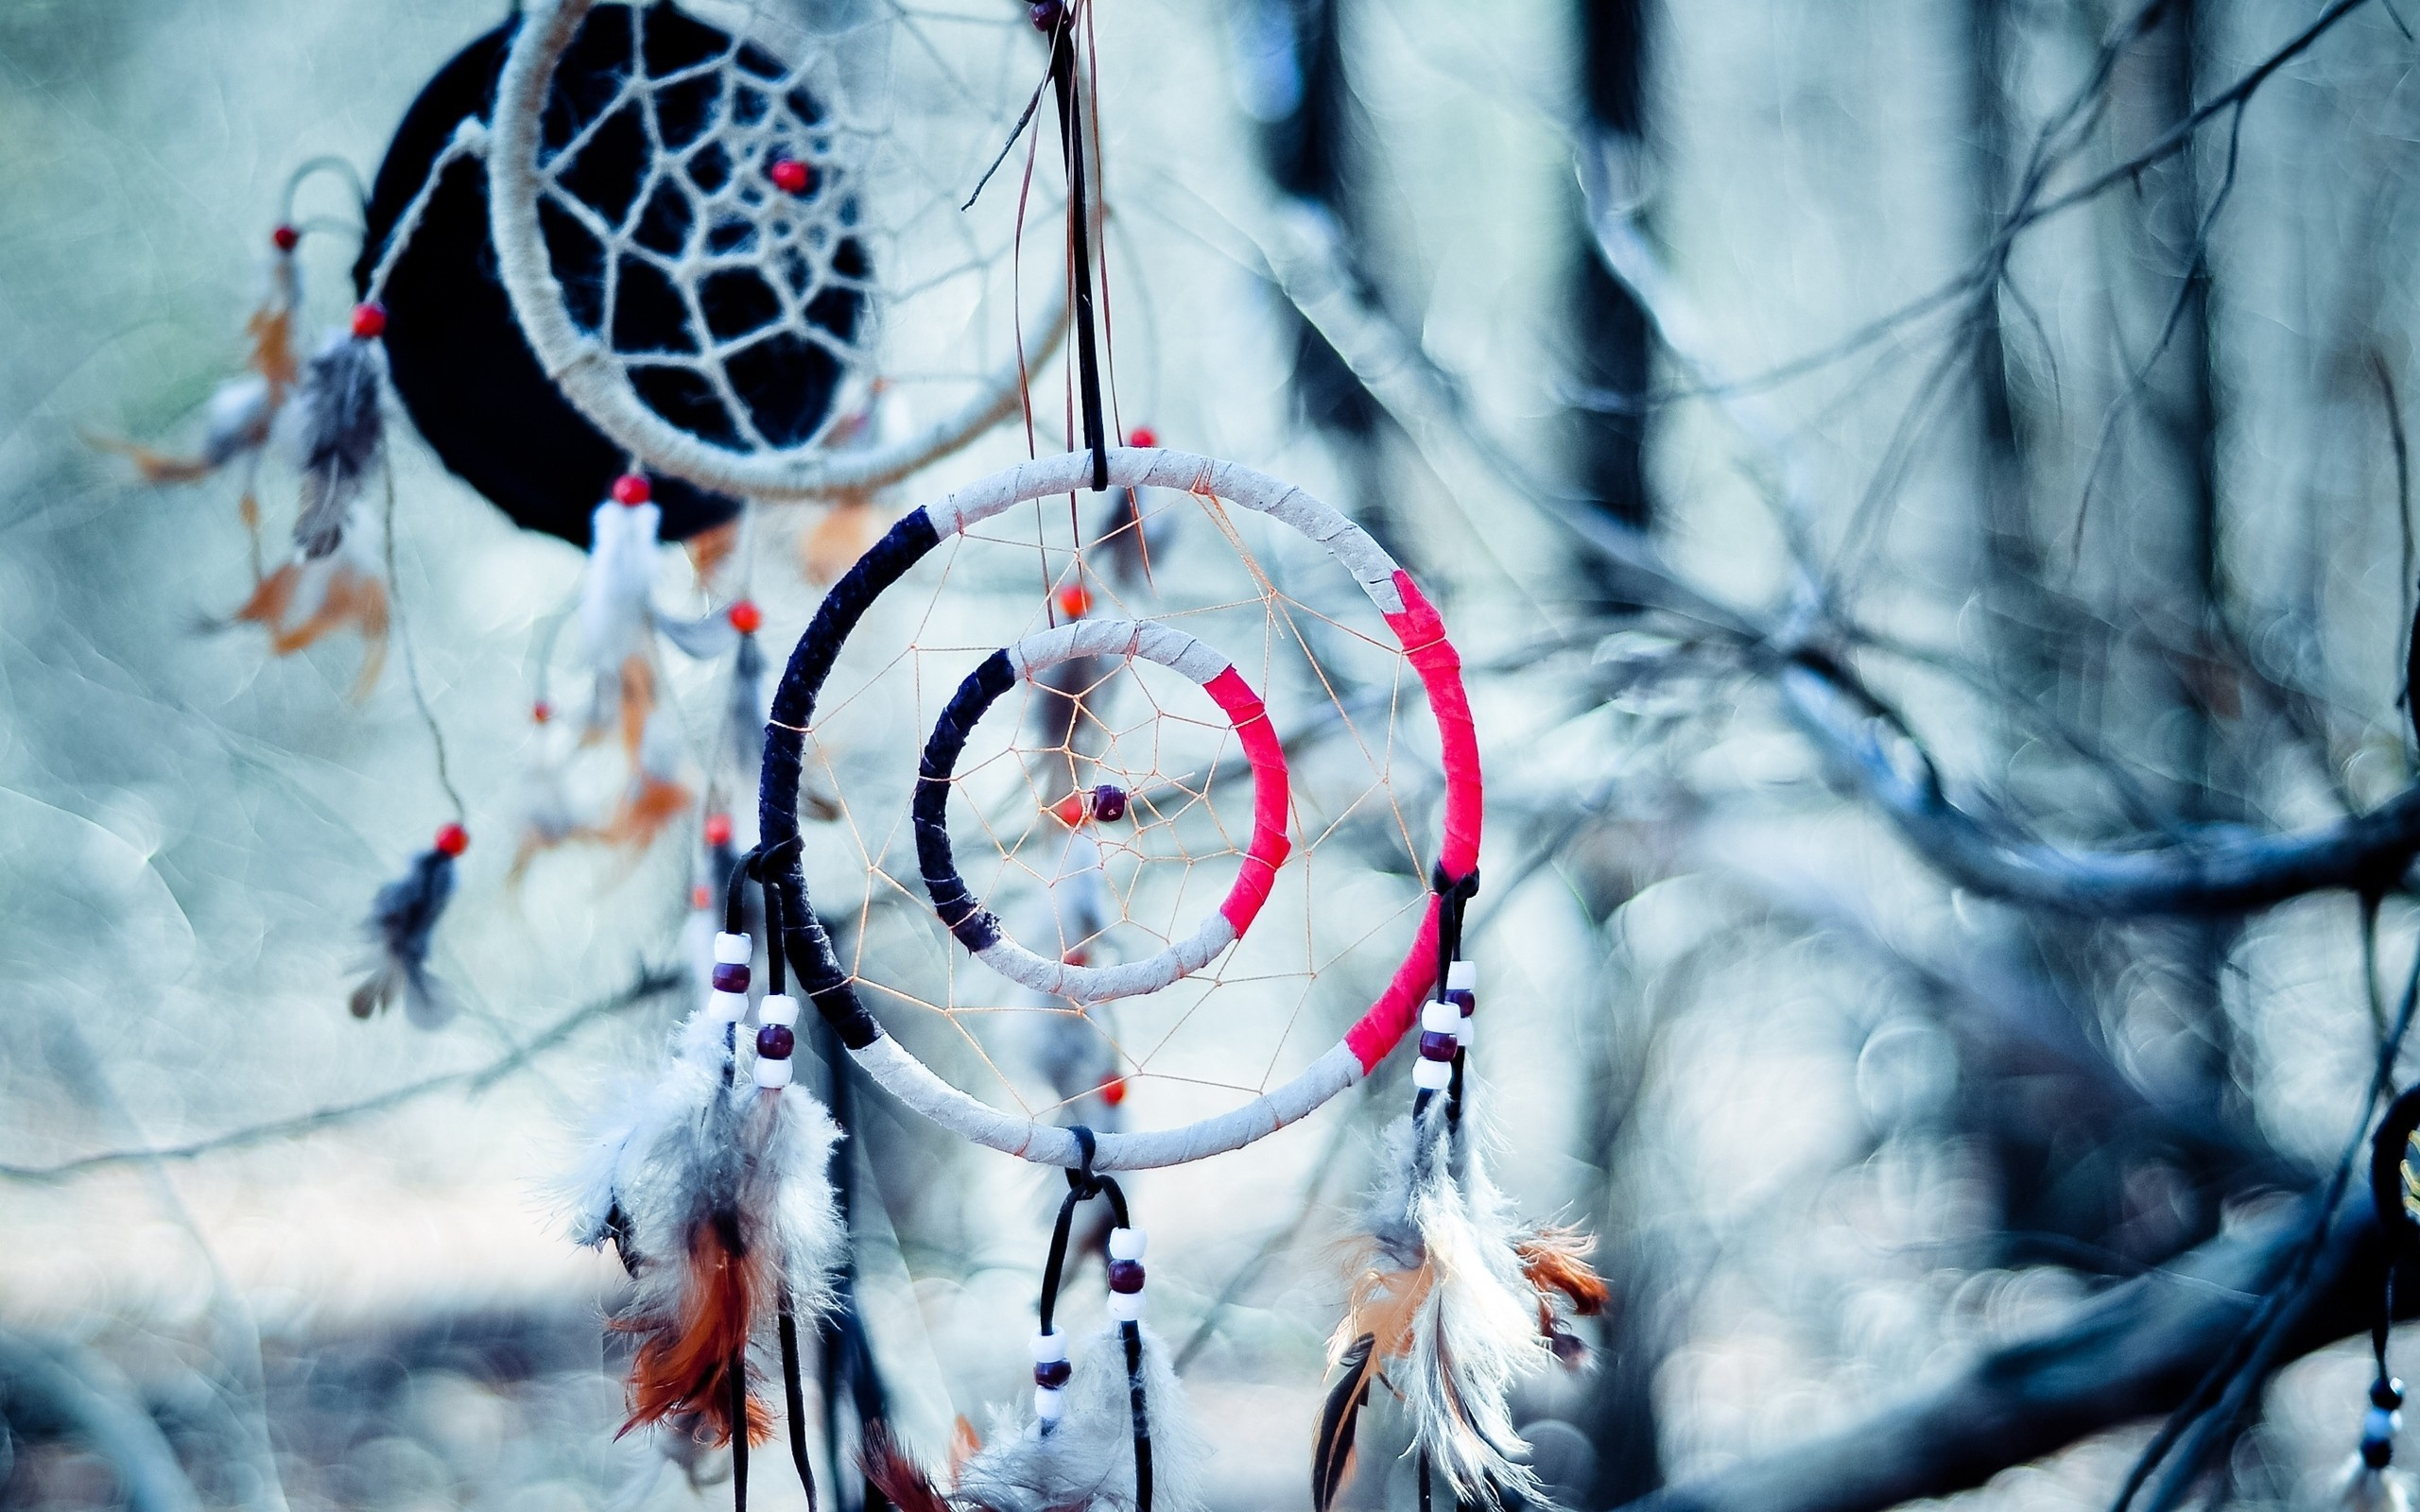 Dreamcatcher Wallpaper | Popular Photography